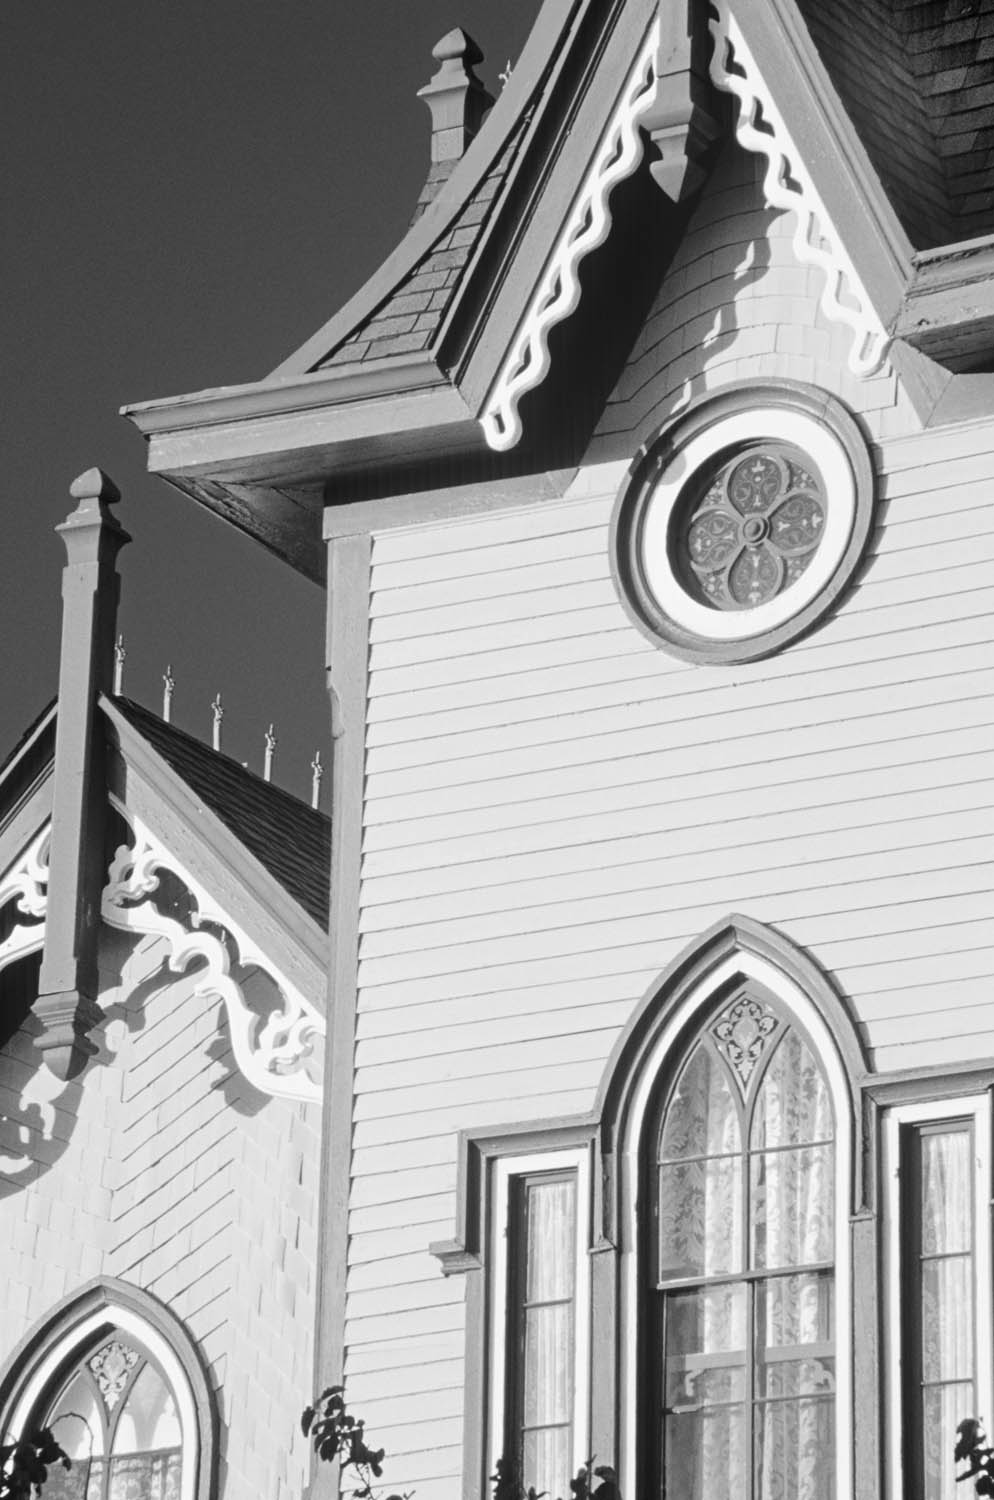 Black and white photograph of the details of a Victorian church